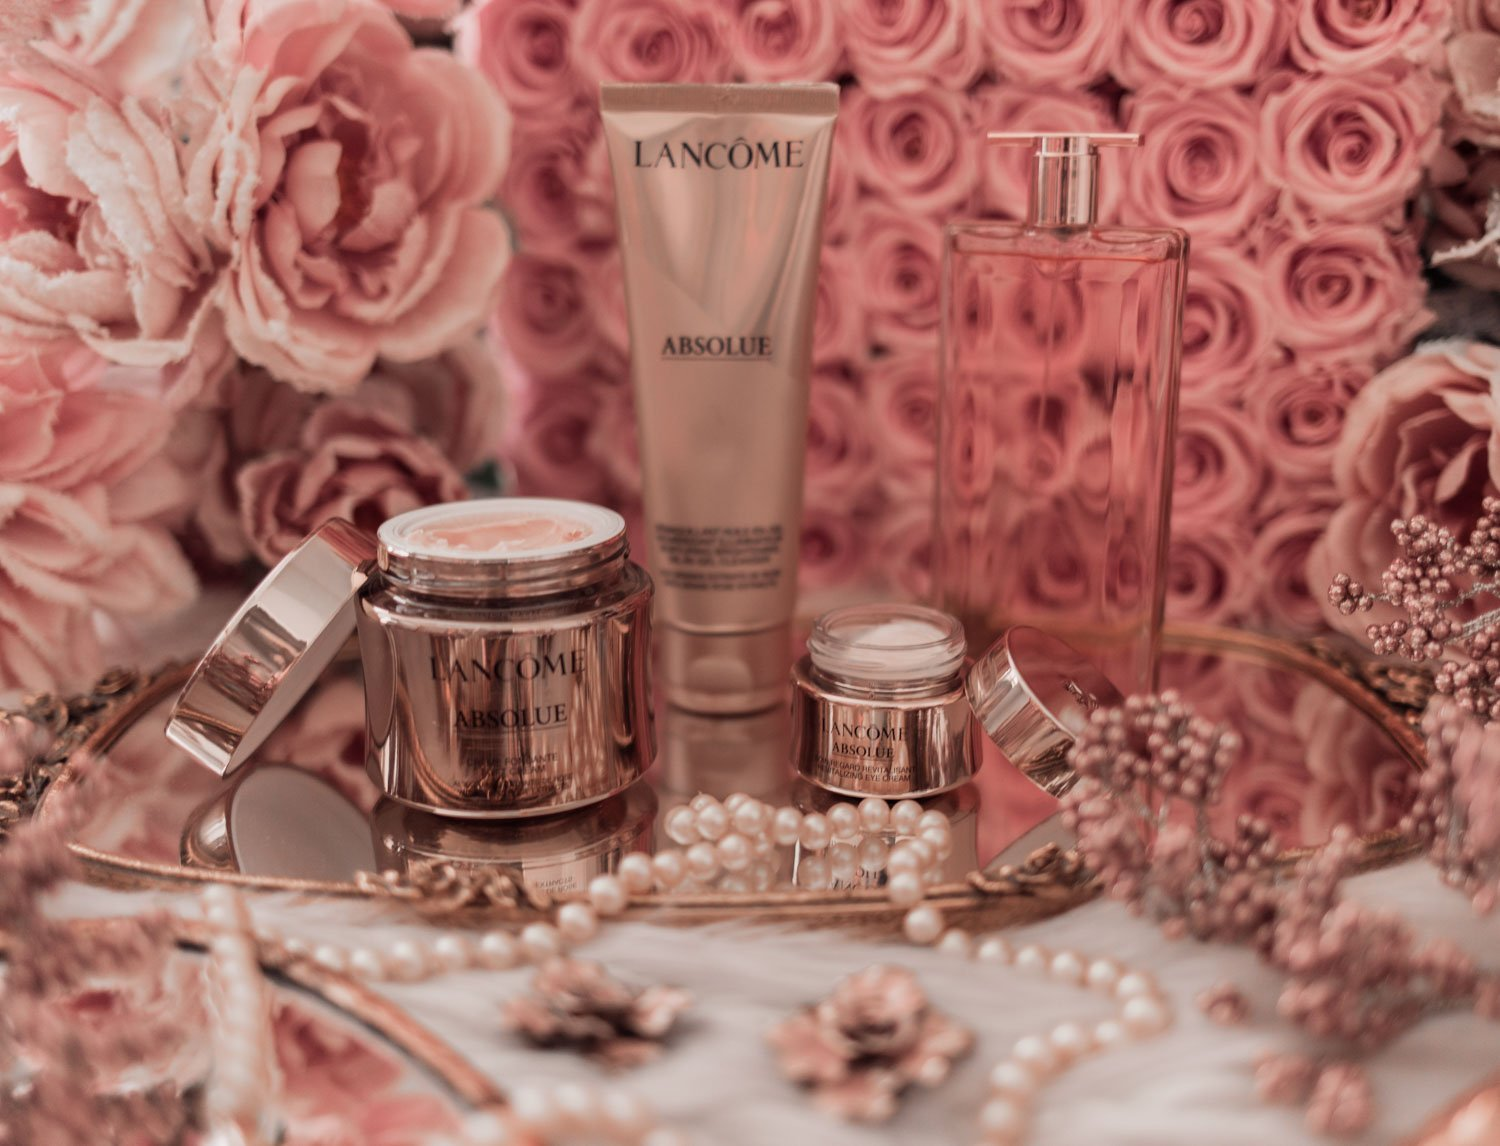 Feminine fashion blogger Elizabeth Hugen of Lizzie in Lace shares the Best Mother's Day gift ideas in her Mother's Day gift guide including this Lancome Absolu Skincare Set and Idole Fragrance